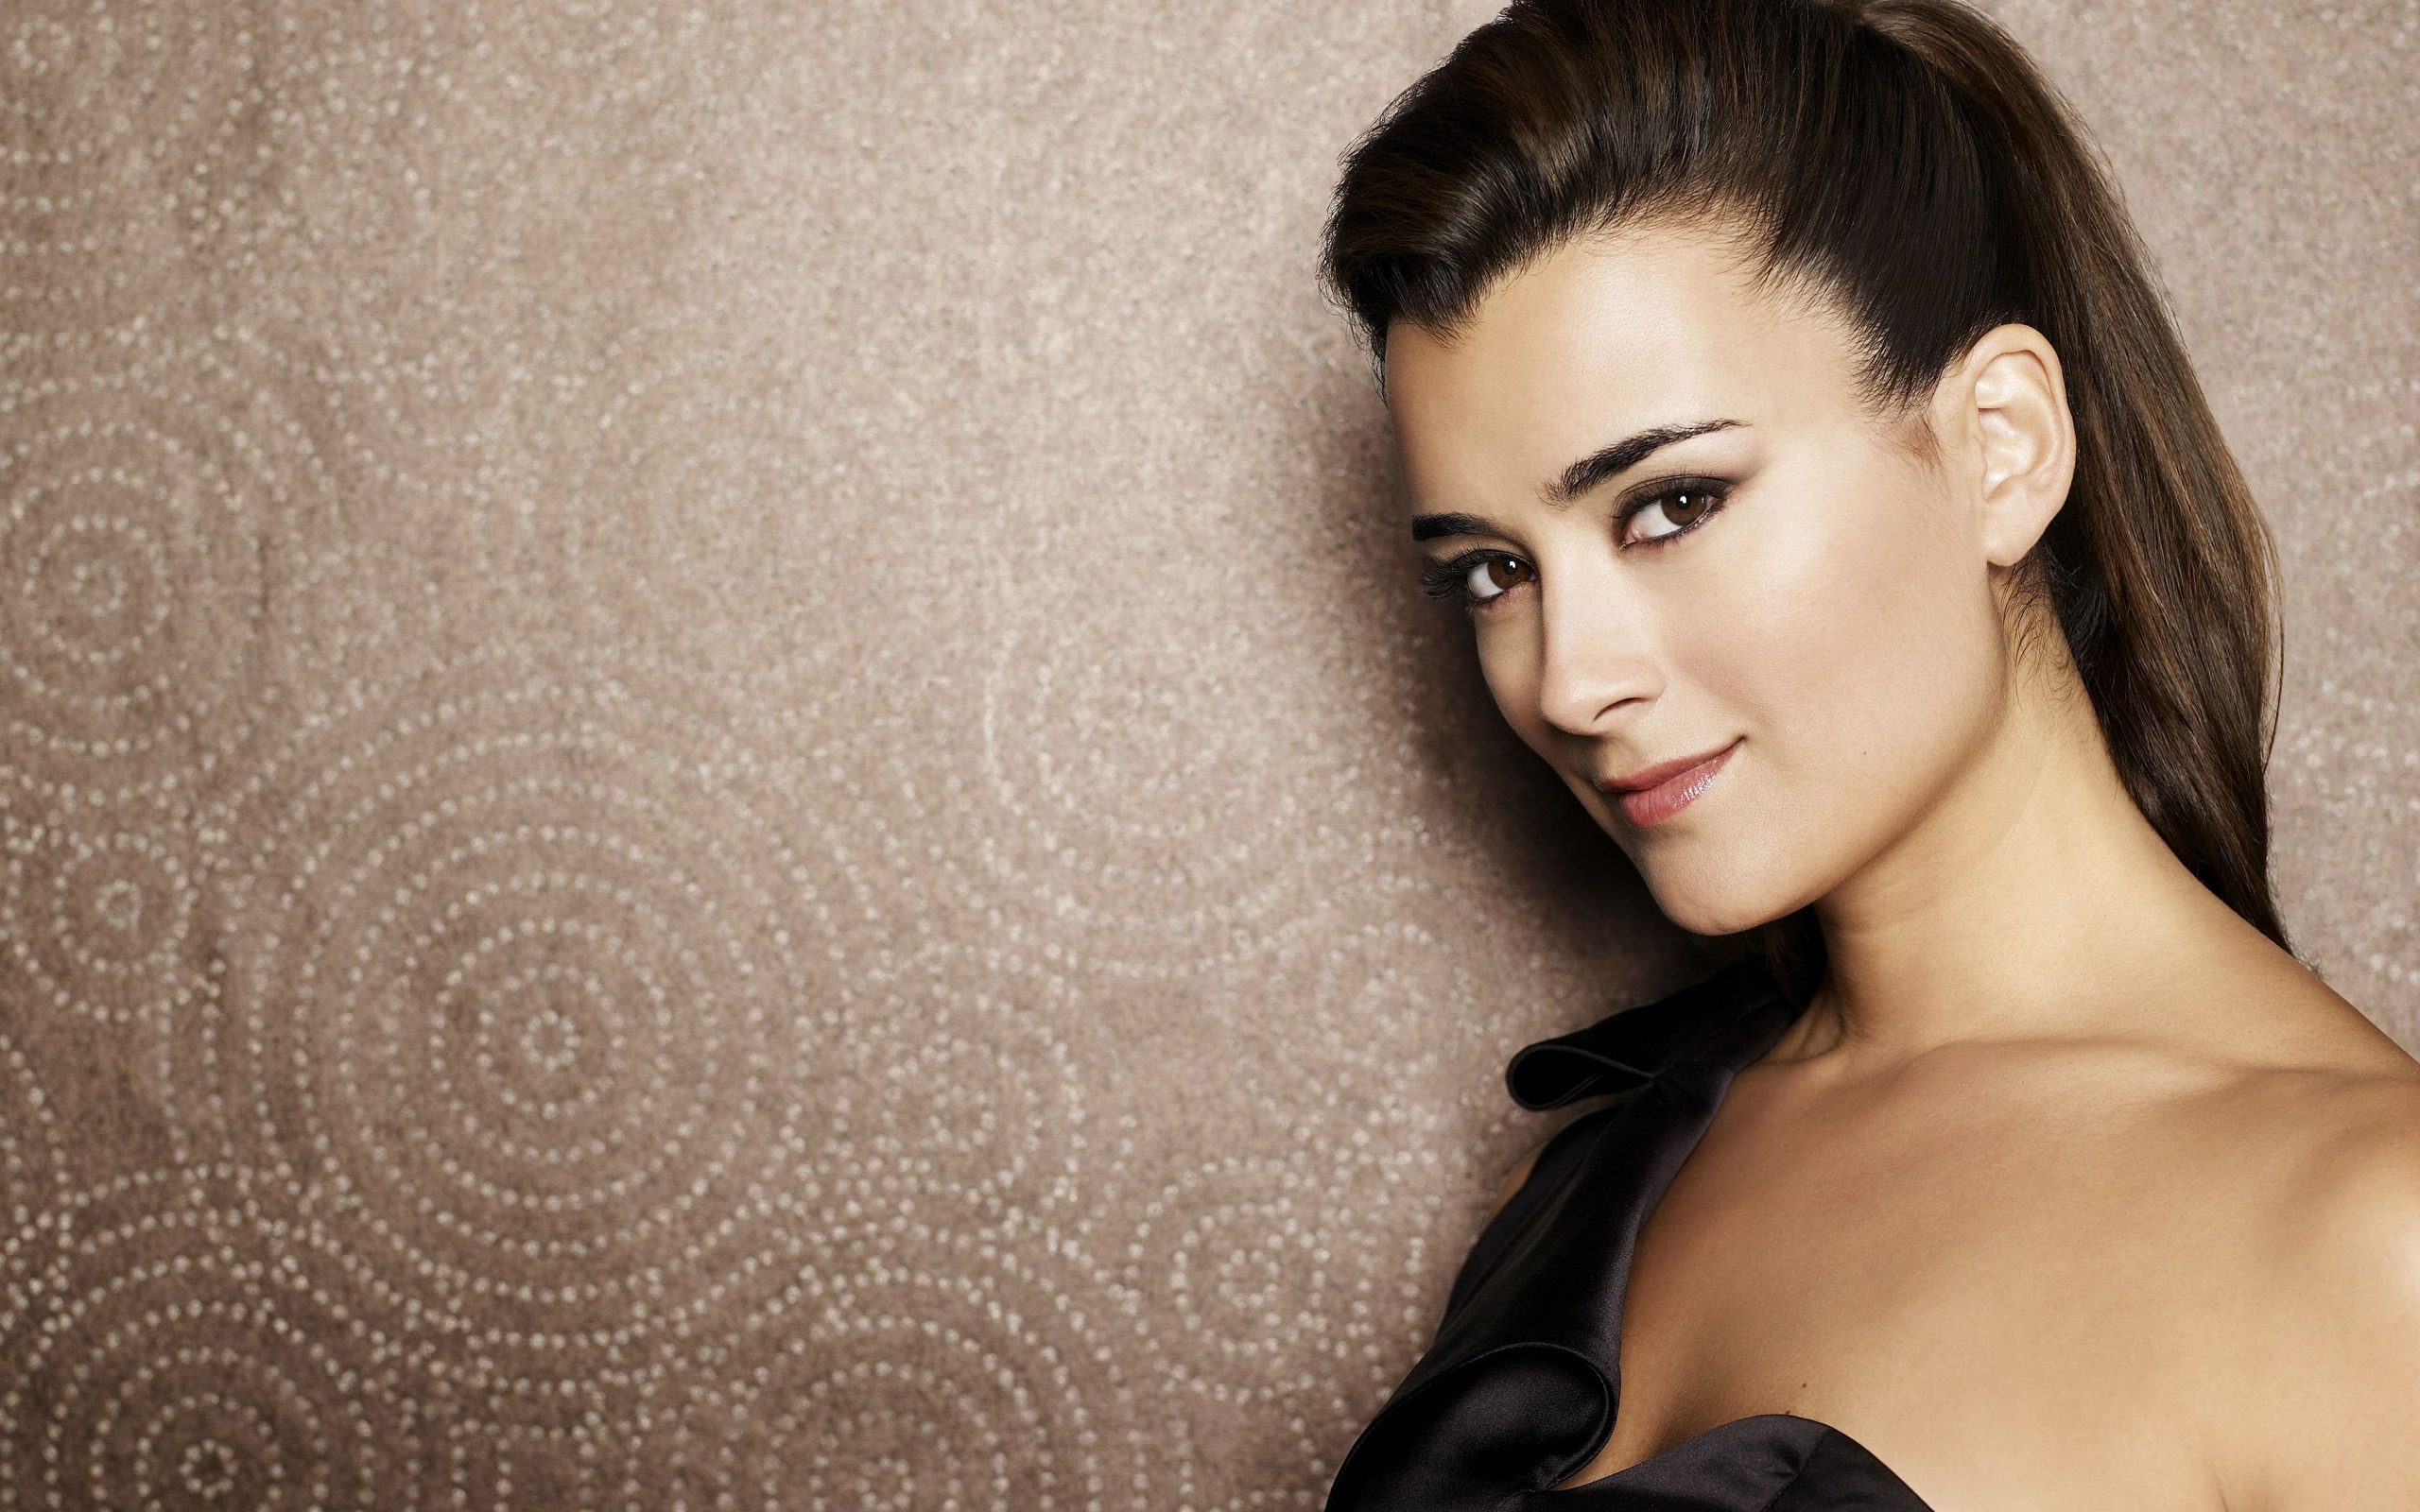 Cote de Pablo #003 - 2560x1600 Wallpapers Pictures Photos Images